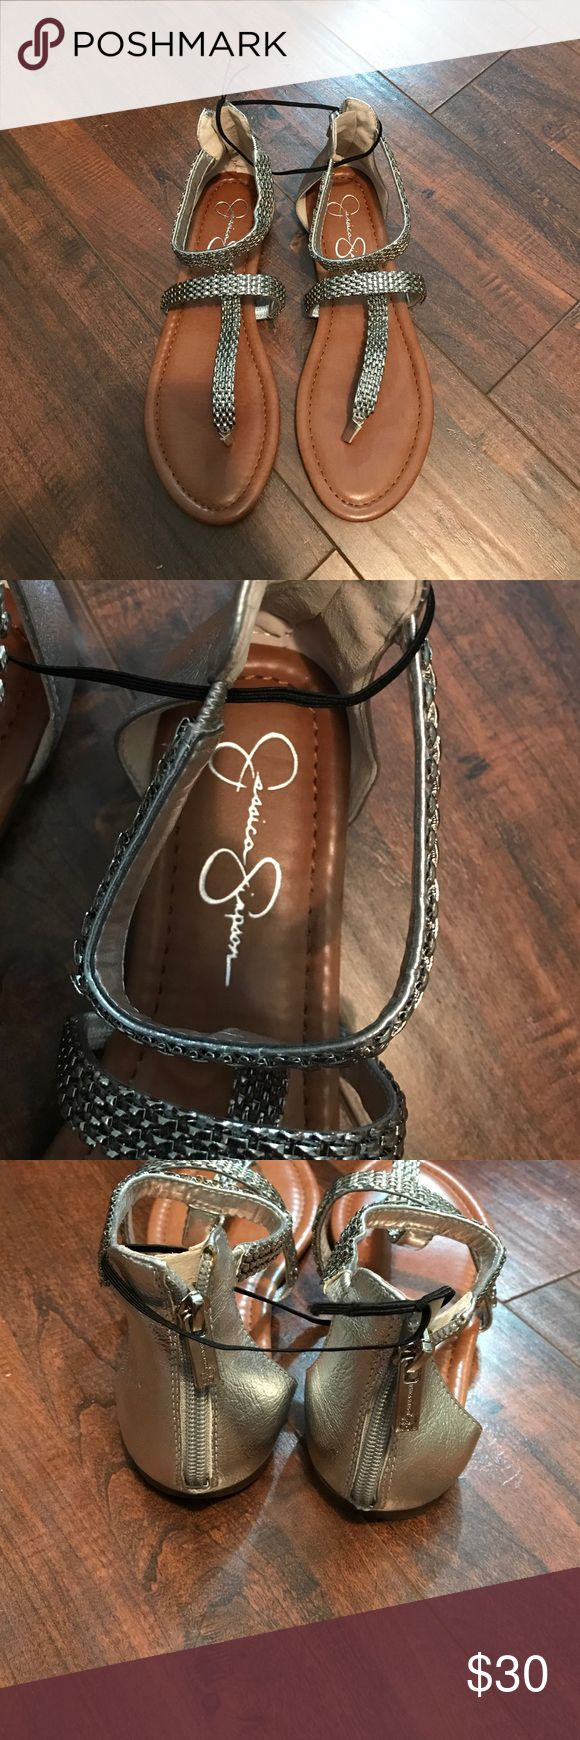 Jessica Simpson Sandals New, never worn sandals. Stickers still on bottom, no box. Silver Jessica Simpson Shoes Sandals